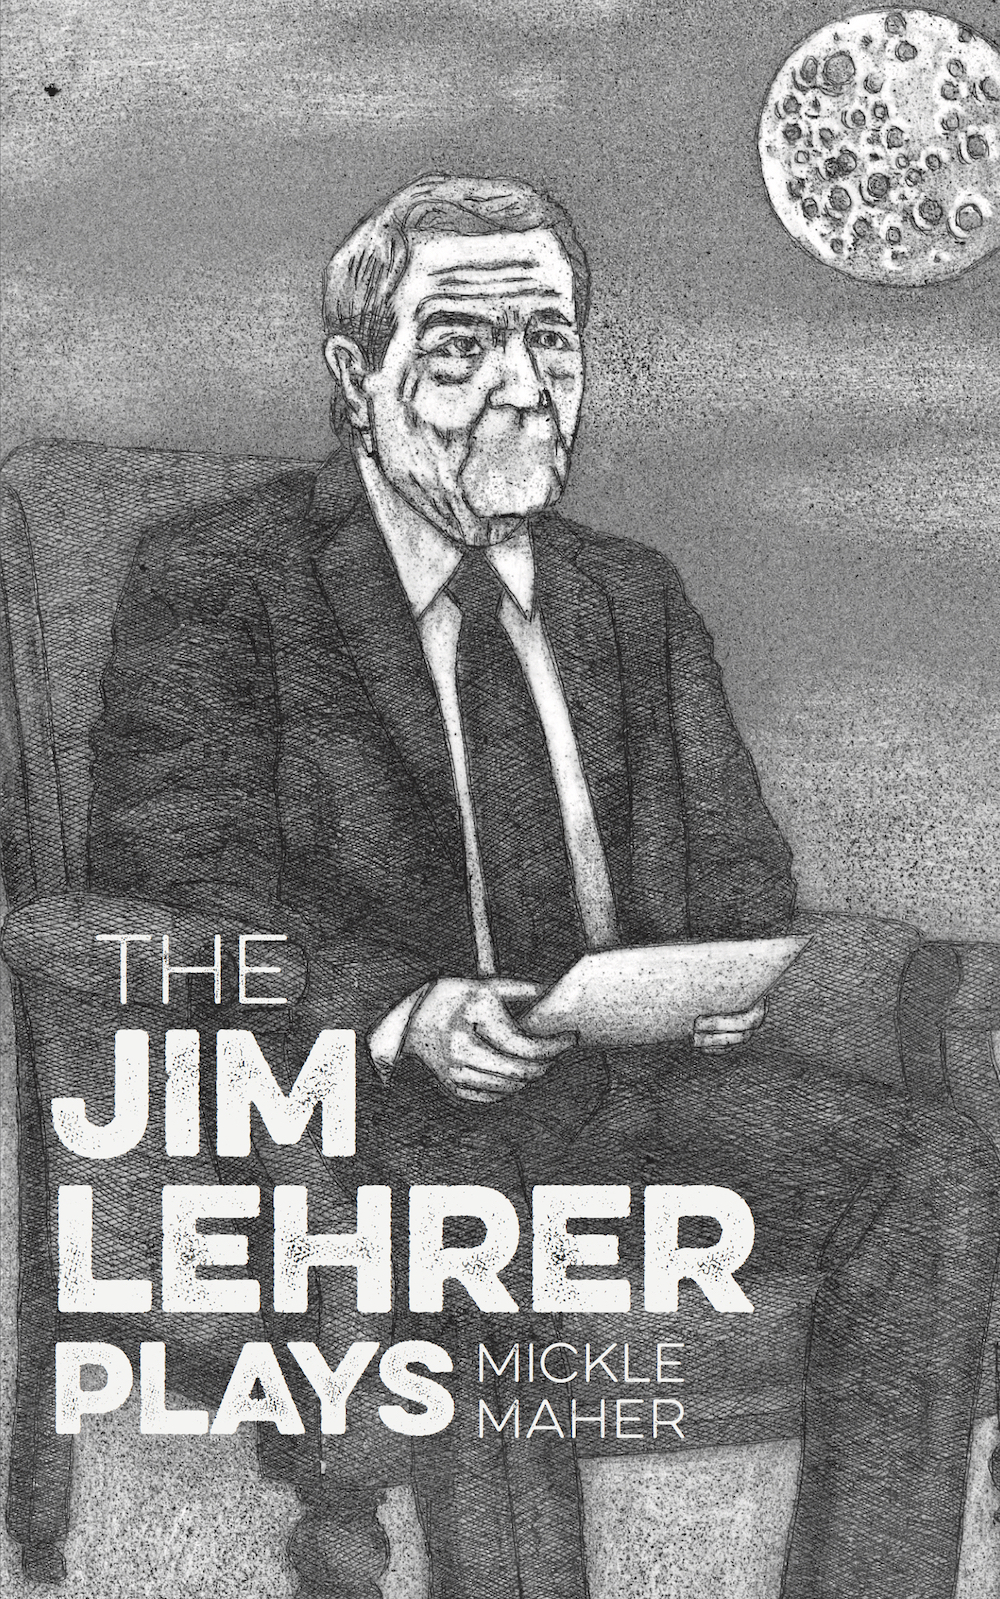 The Jim Lehrer Plays